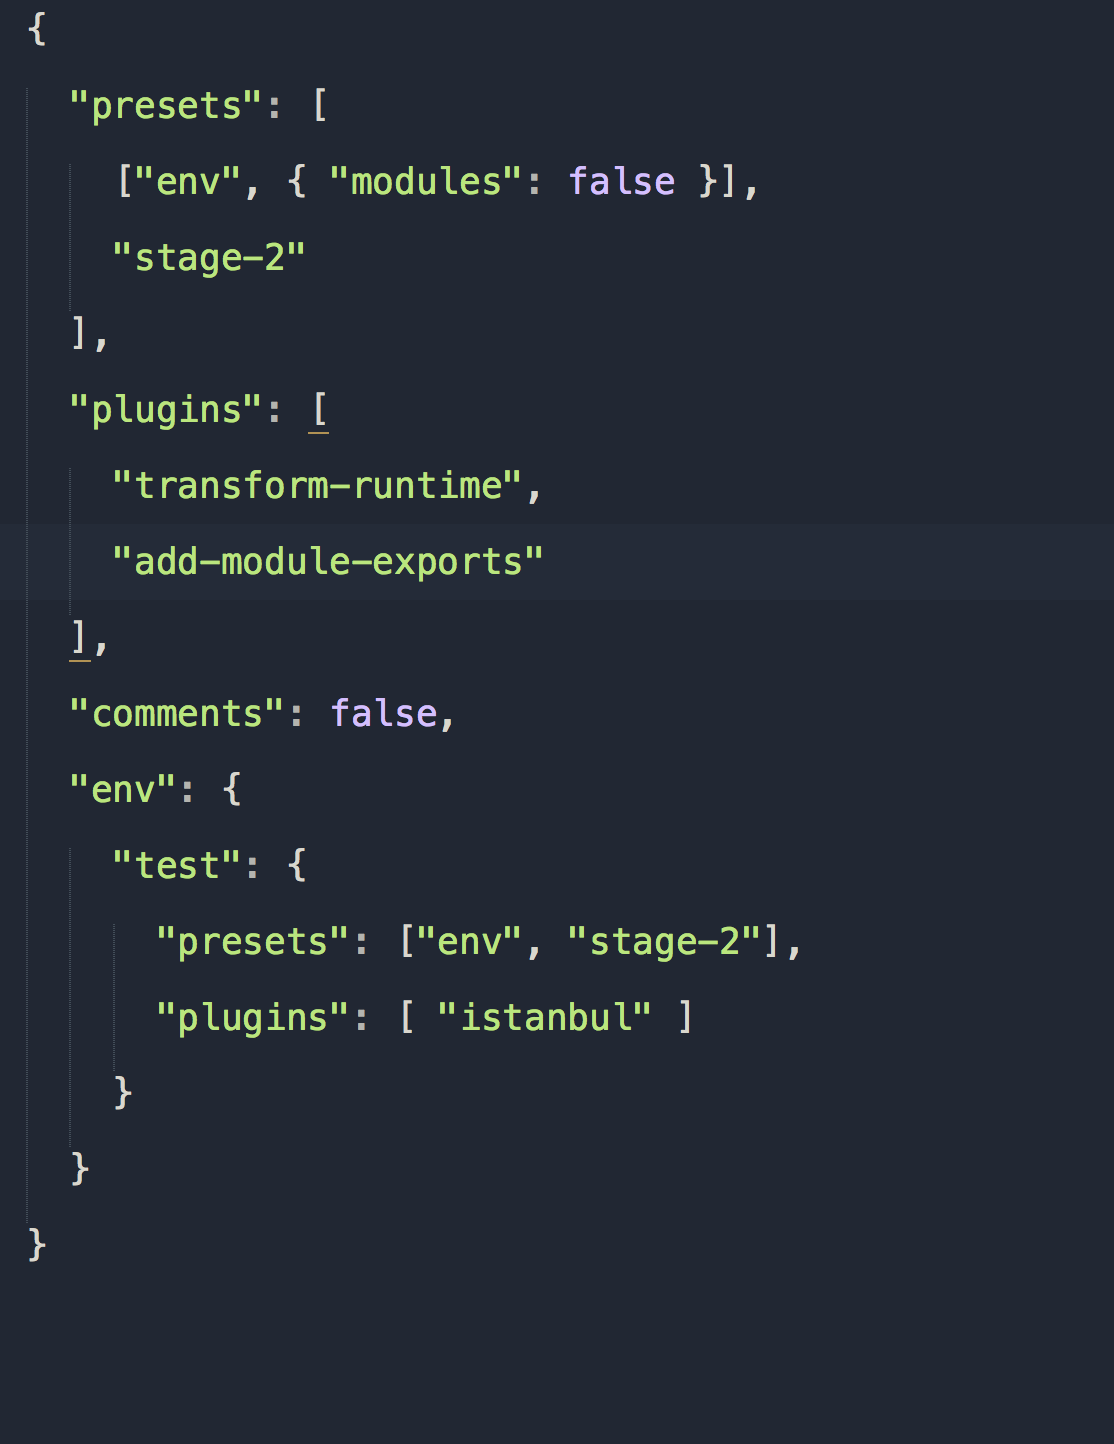 babel-preset-env not support the module exports,what should